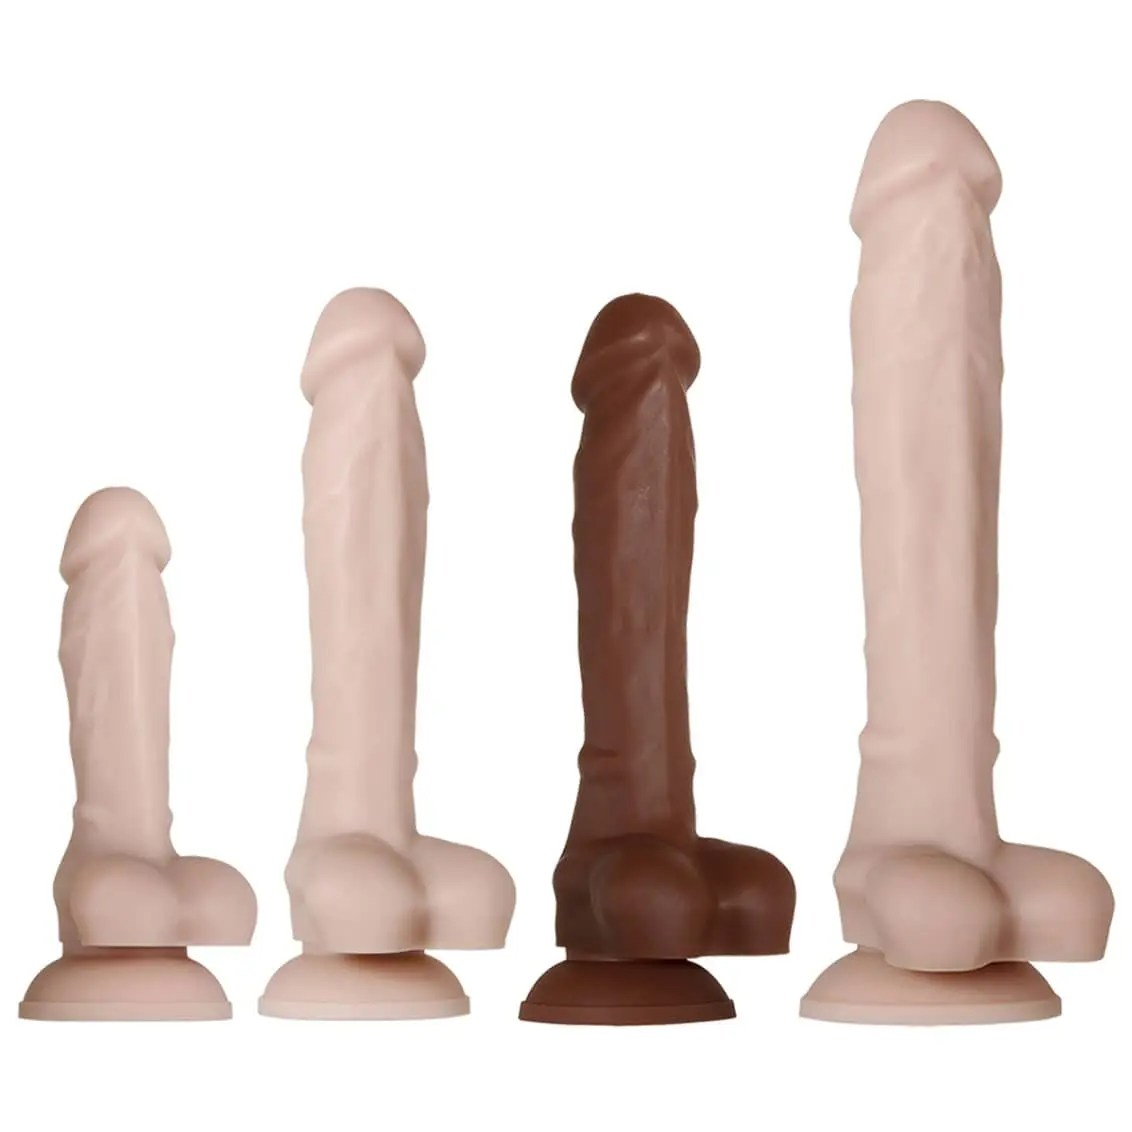 Real Supple – Poseable Silicone Dildos